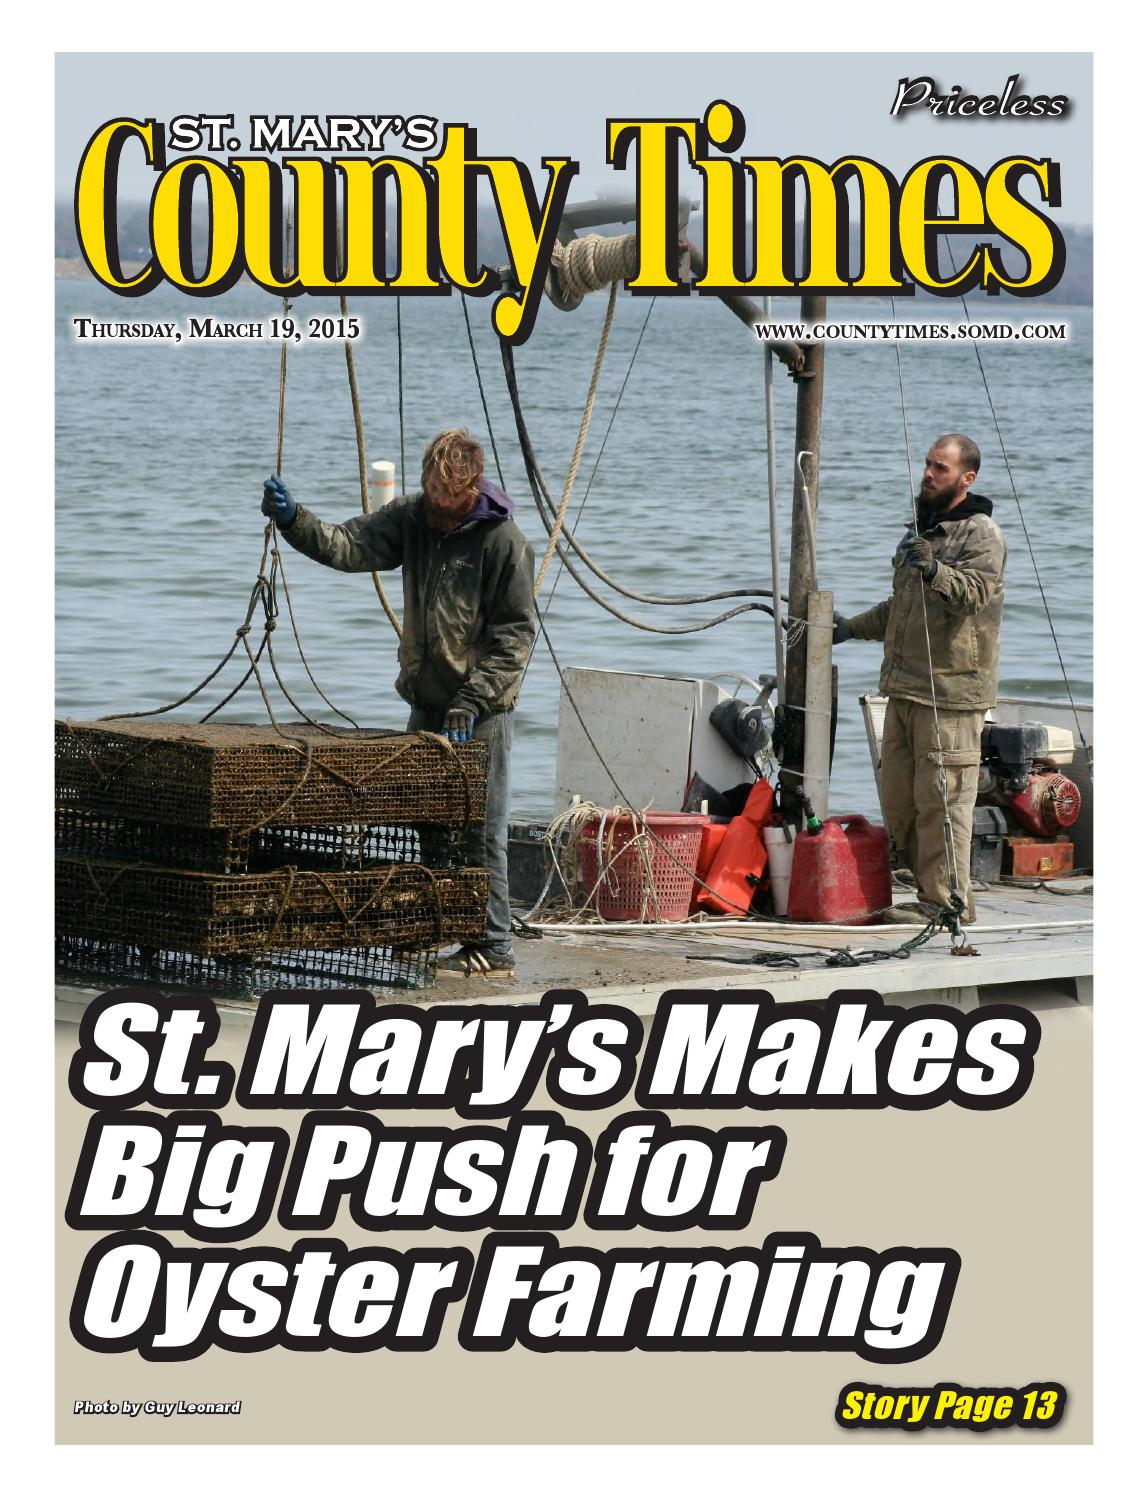 2015 03 19 St Marys County Times By Southern Maryland Online Issuu Big Boss Kunci Ring India 12 X 13 Mm